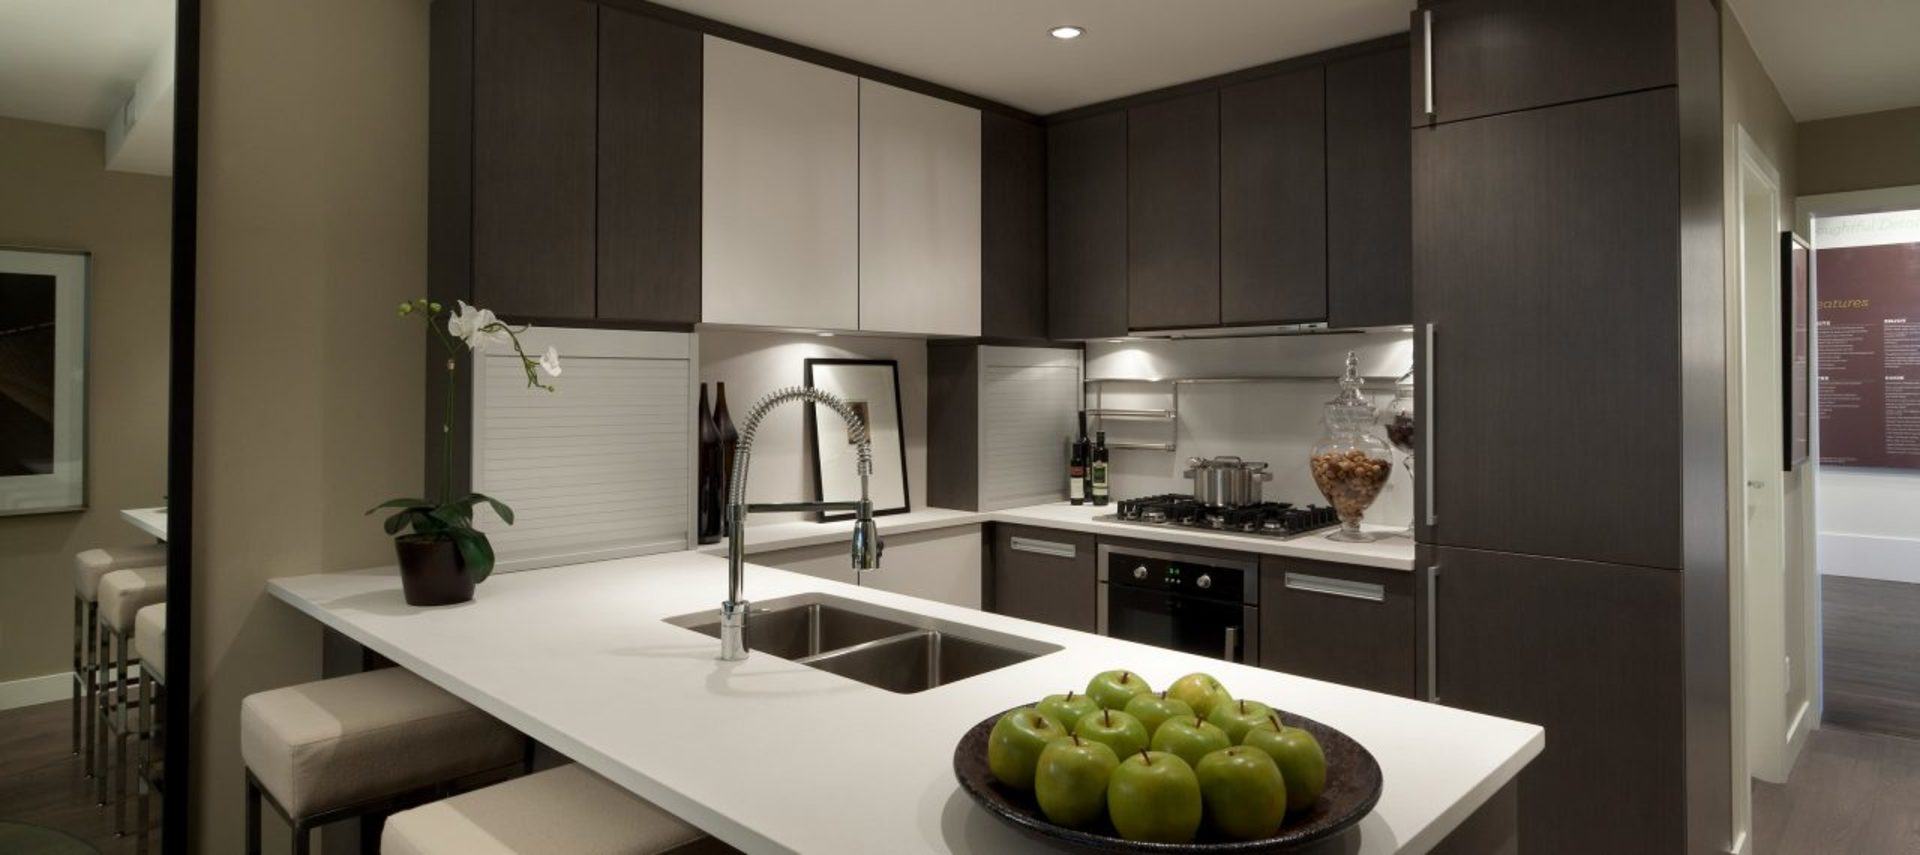 j-kitchen-1280x570 at 288 W 1st Avenue, Olympic Village, Vancouver West